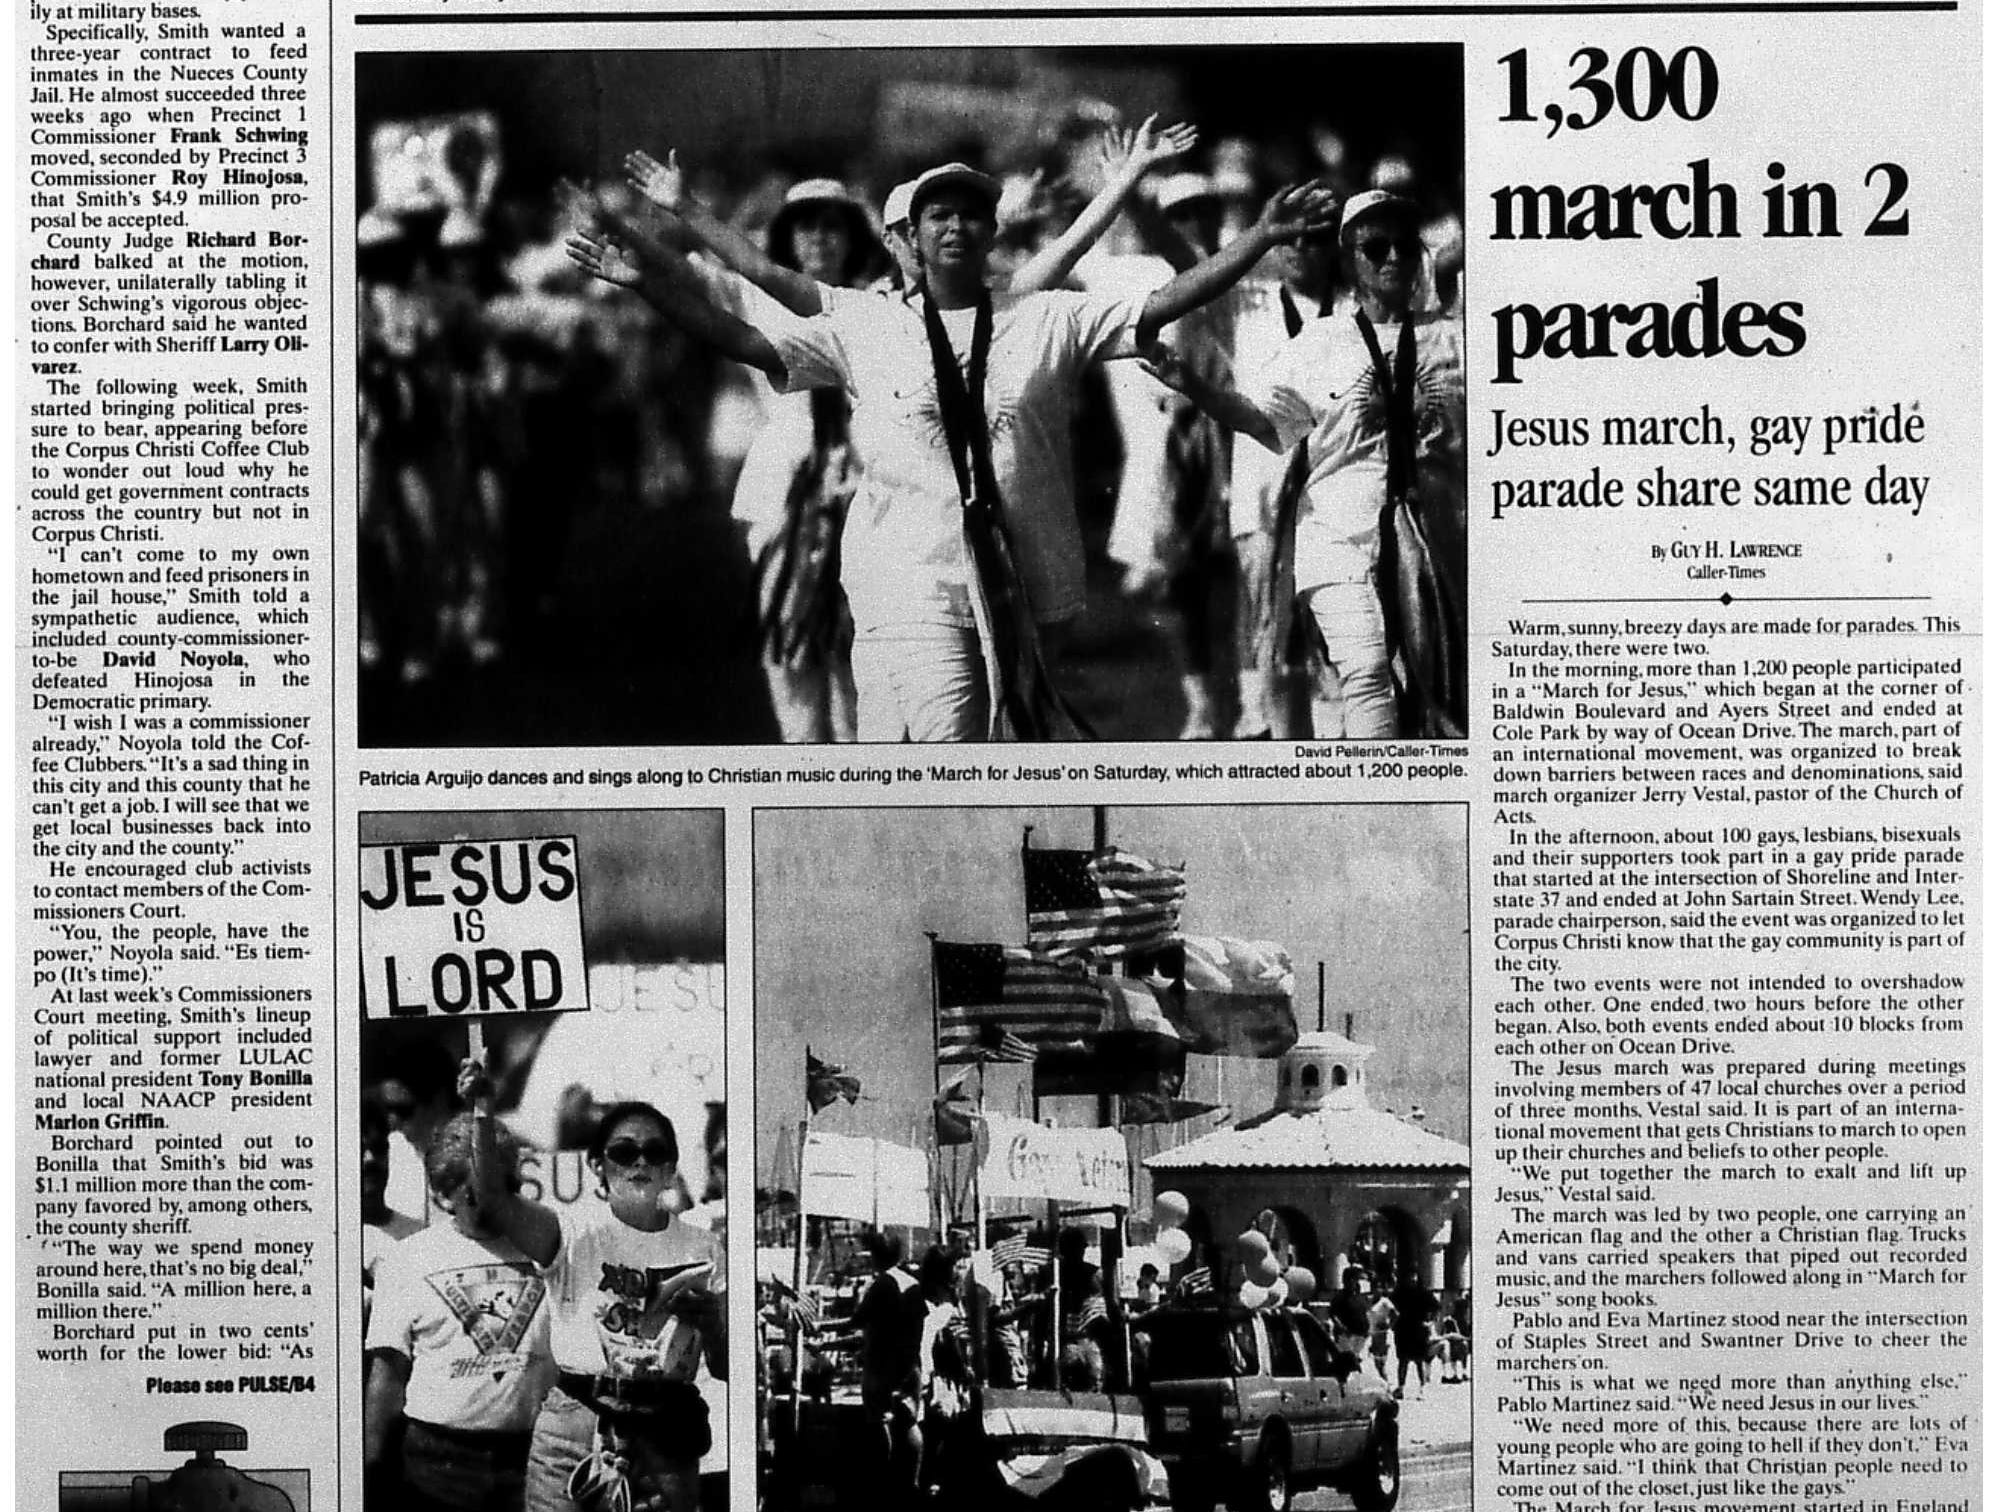 The local section front page of the May 31, 1998 Caller-Times with a story about two parades being held on the same day. One was a gay pride parade and another was a Jesus parade. (1 of 2)